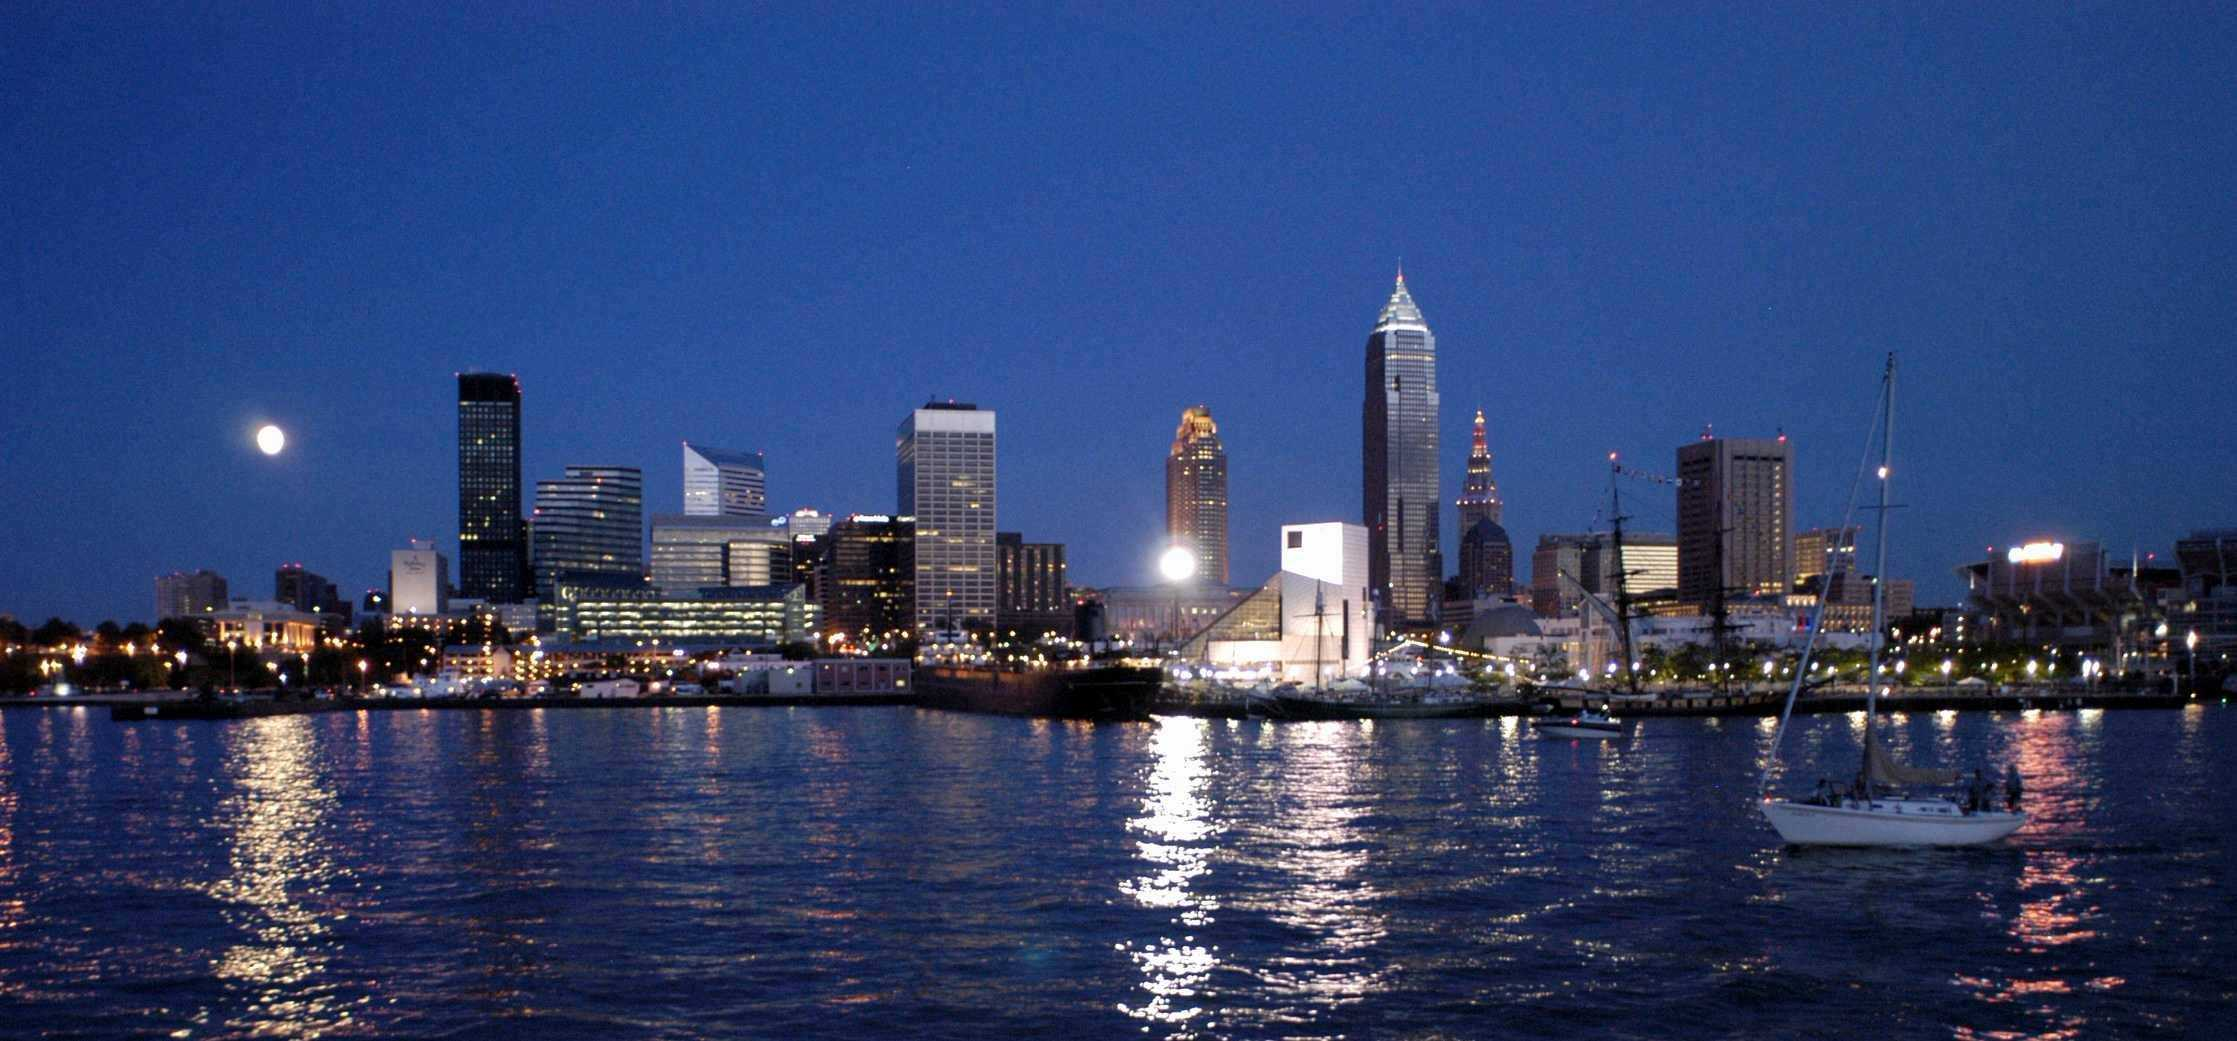 downtown cleveland ohio wallpaper - photo #8